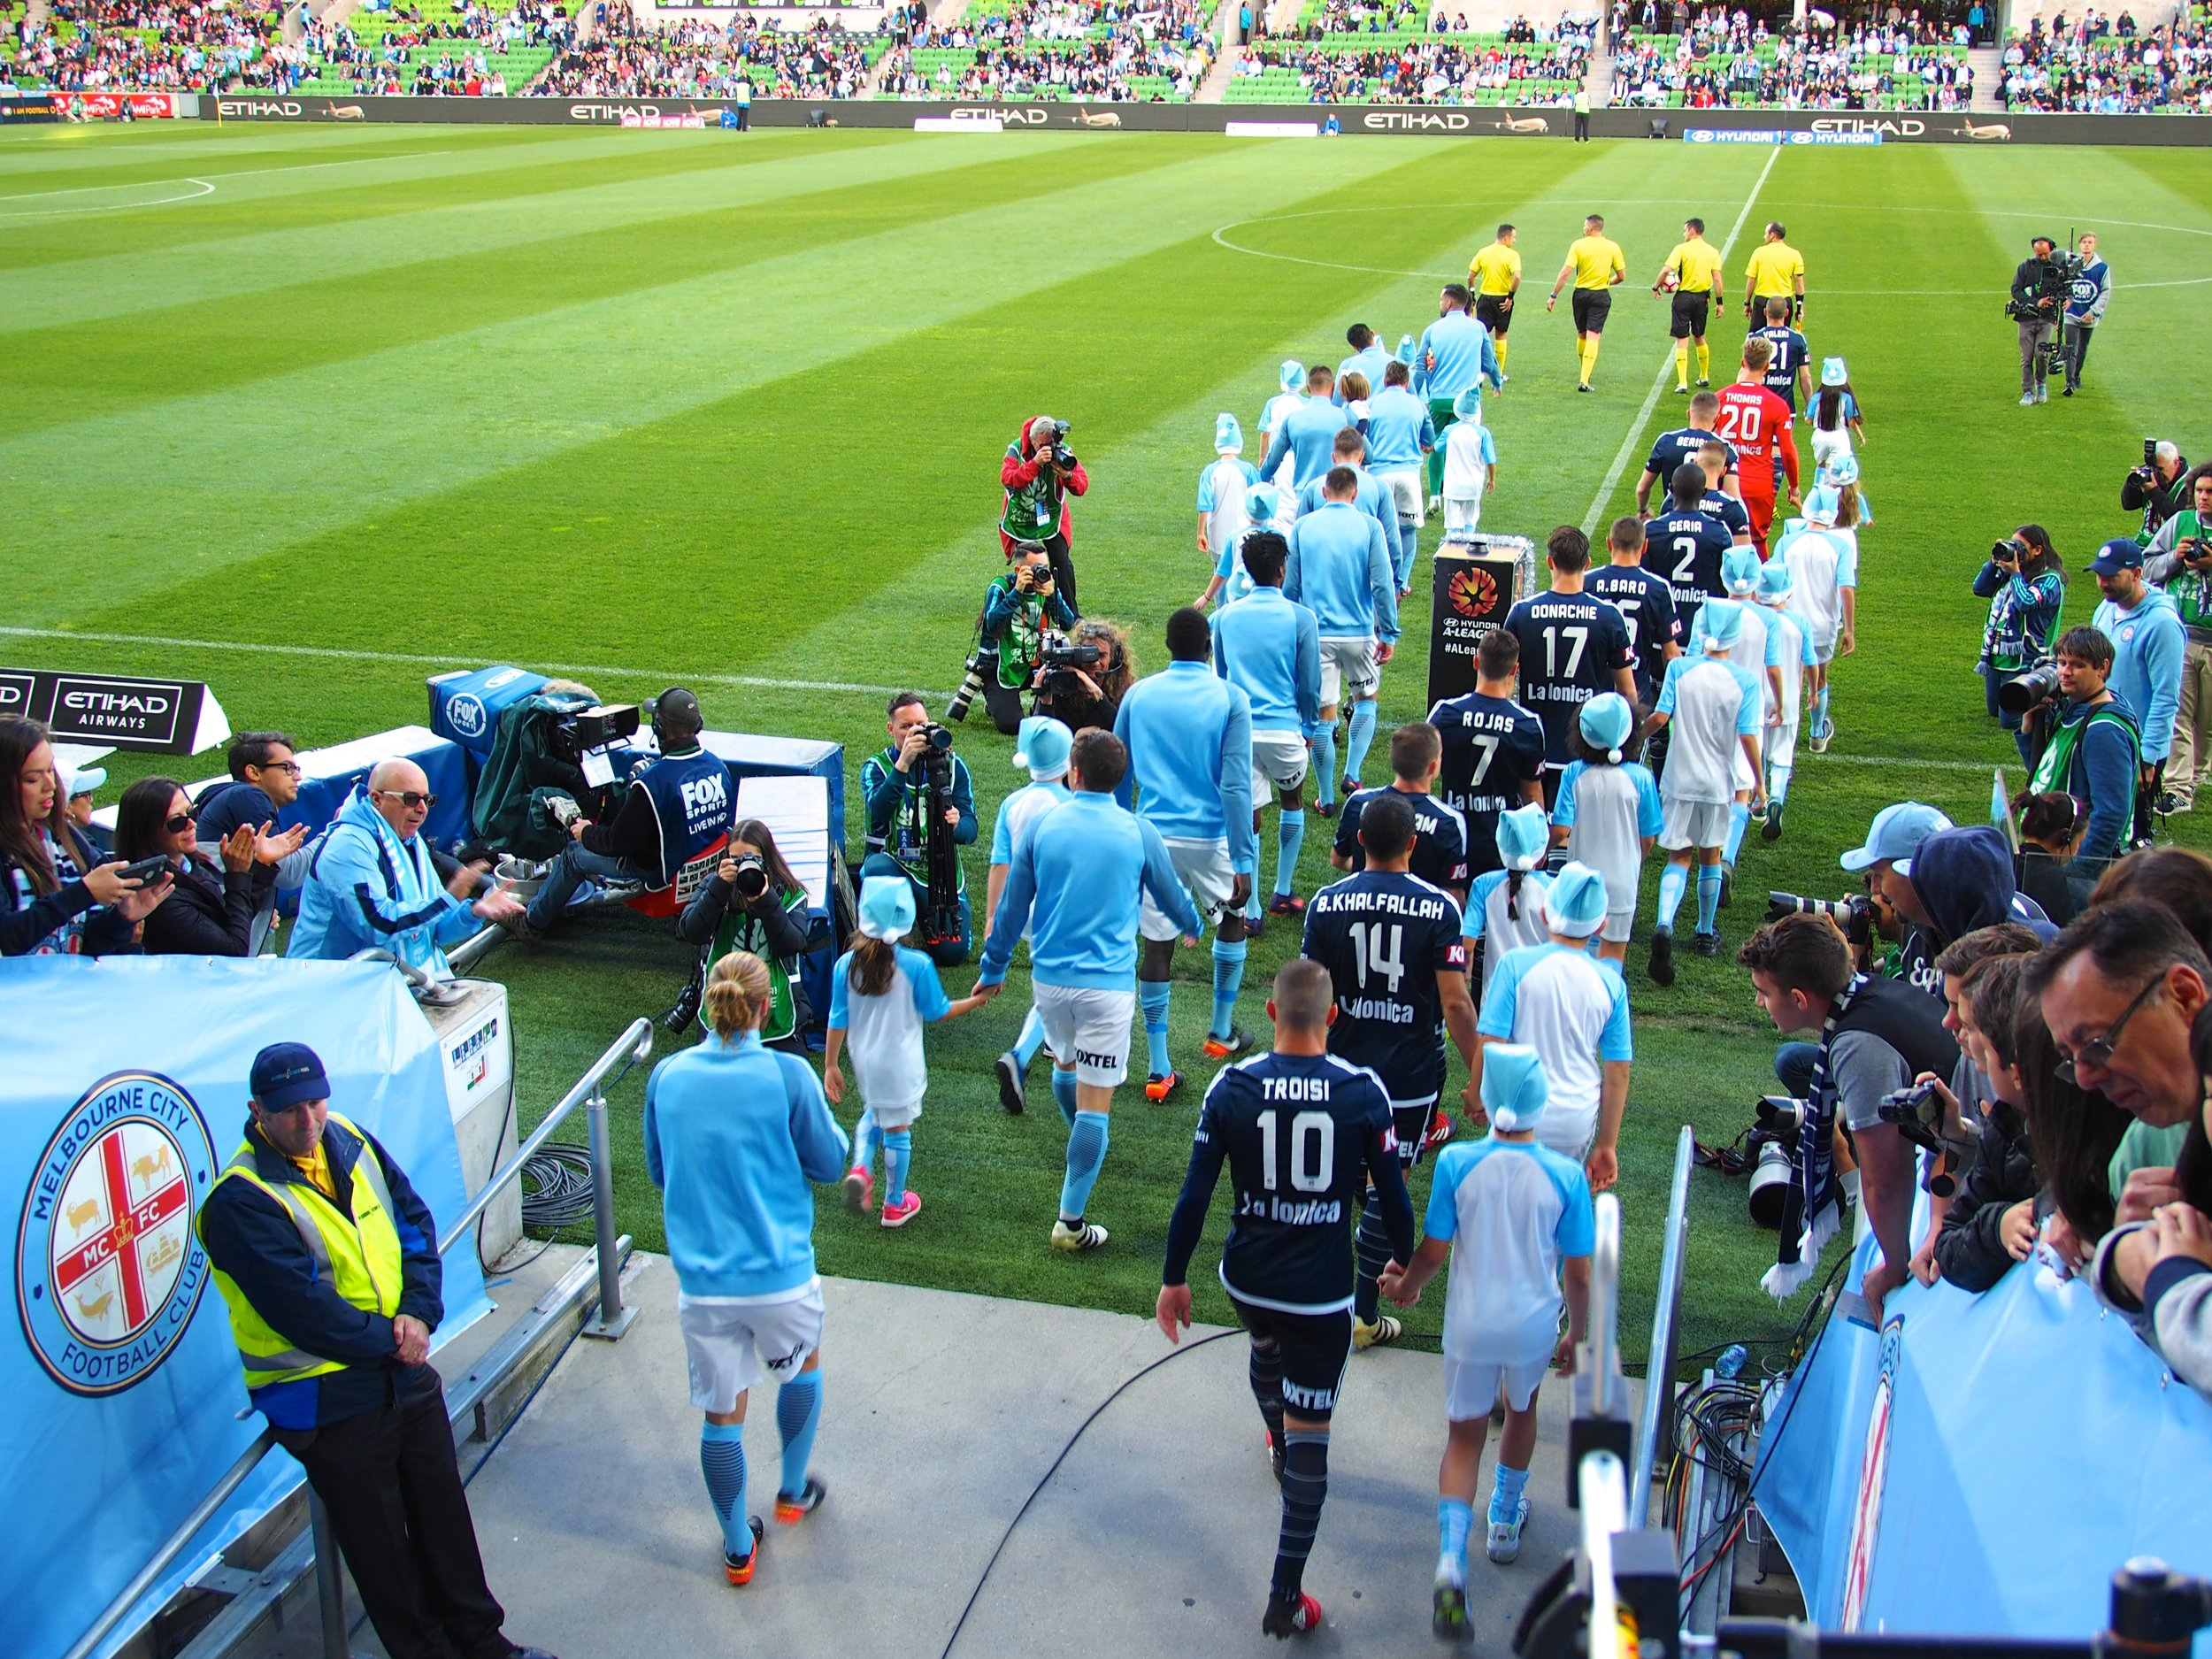 Collingwood kids enjoyed being team mascots for Melbourne City and Melbourne Victory at the start of the match